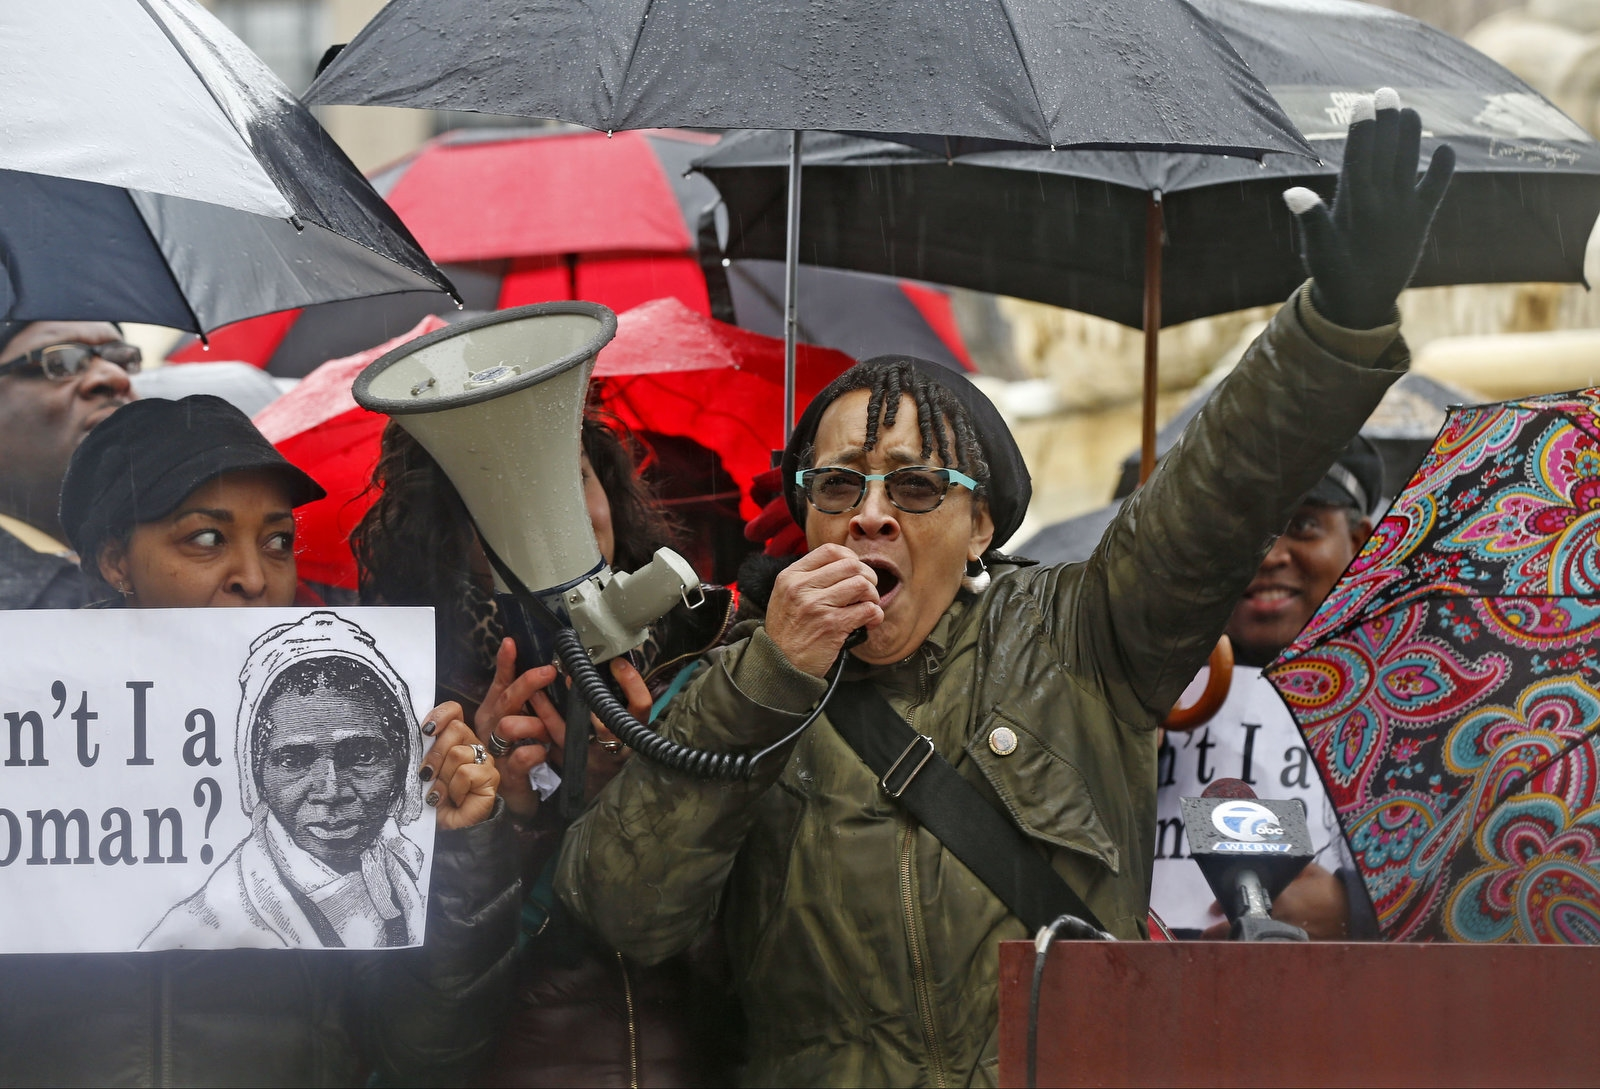 Lorna Hill speaks at the rally calling for the ouster of Carl Paladino from the Buffalo Board of Education. The rally was held in Niagara Square on Tuesday, Jan. 3, 2017.